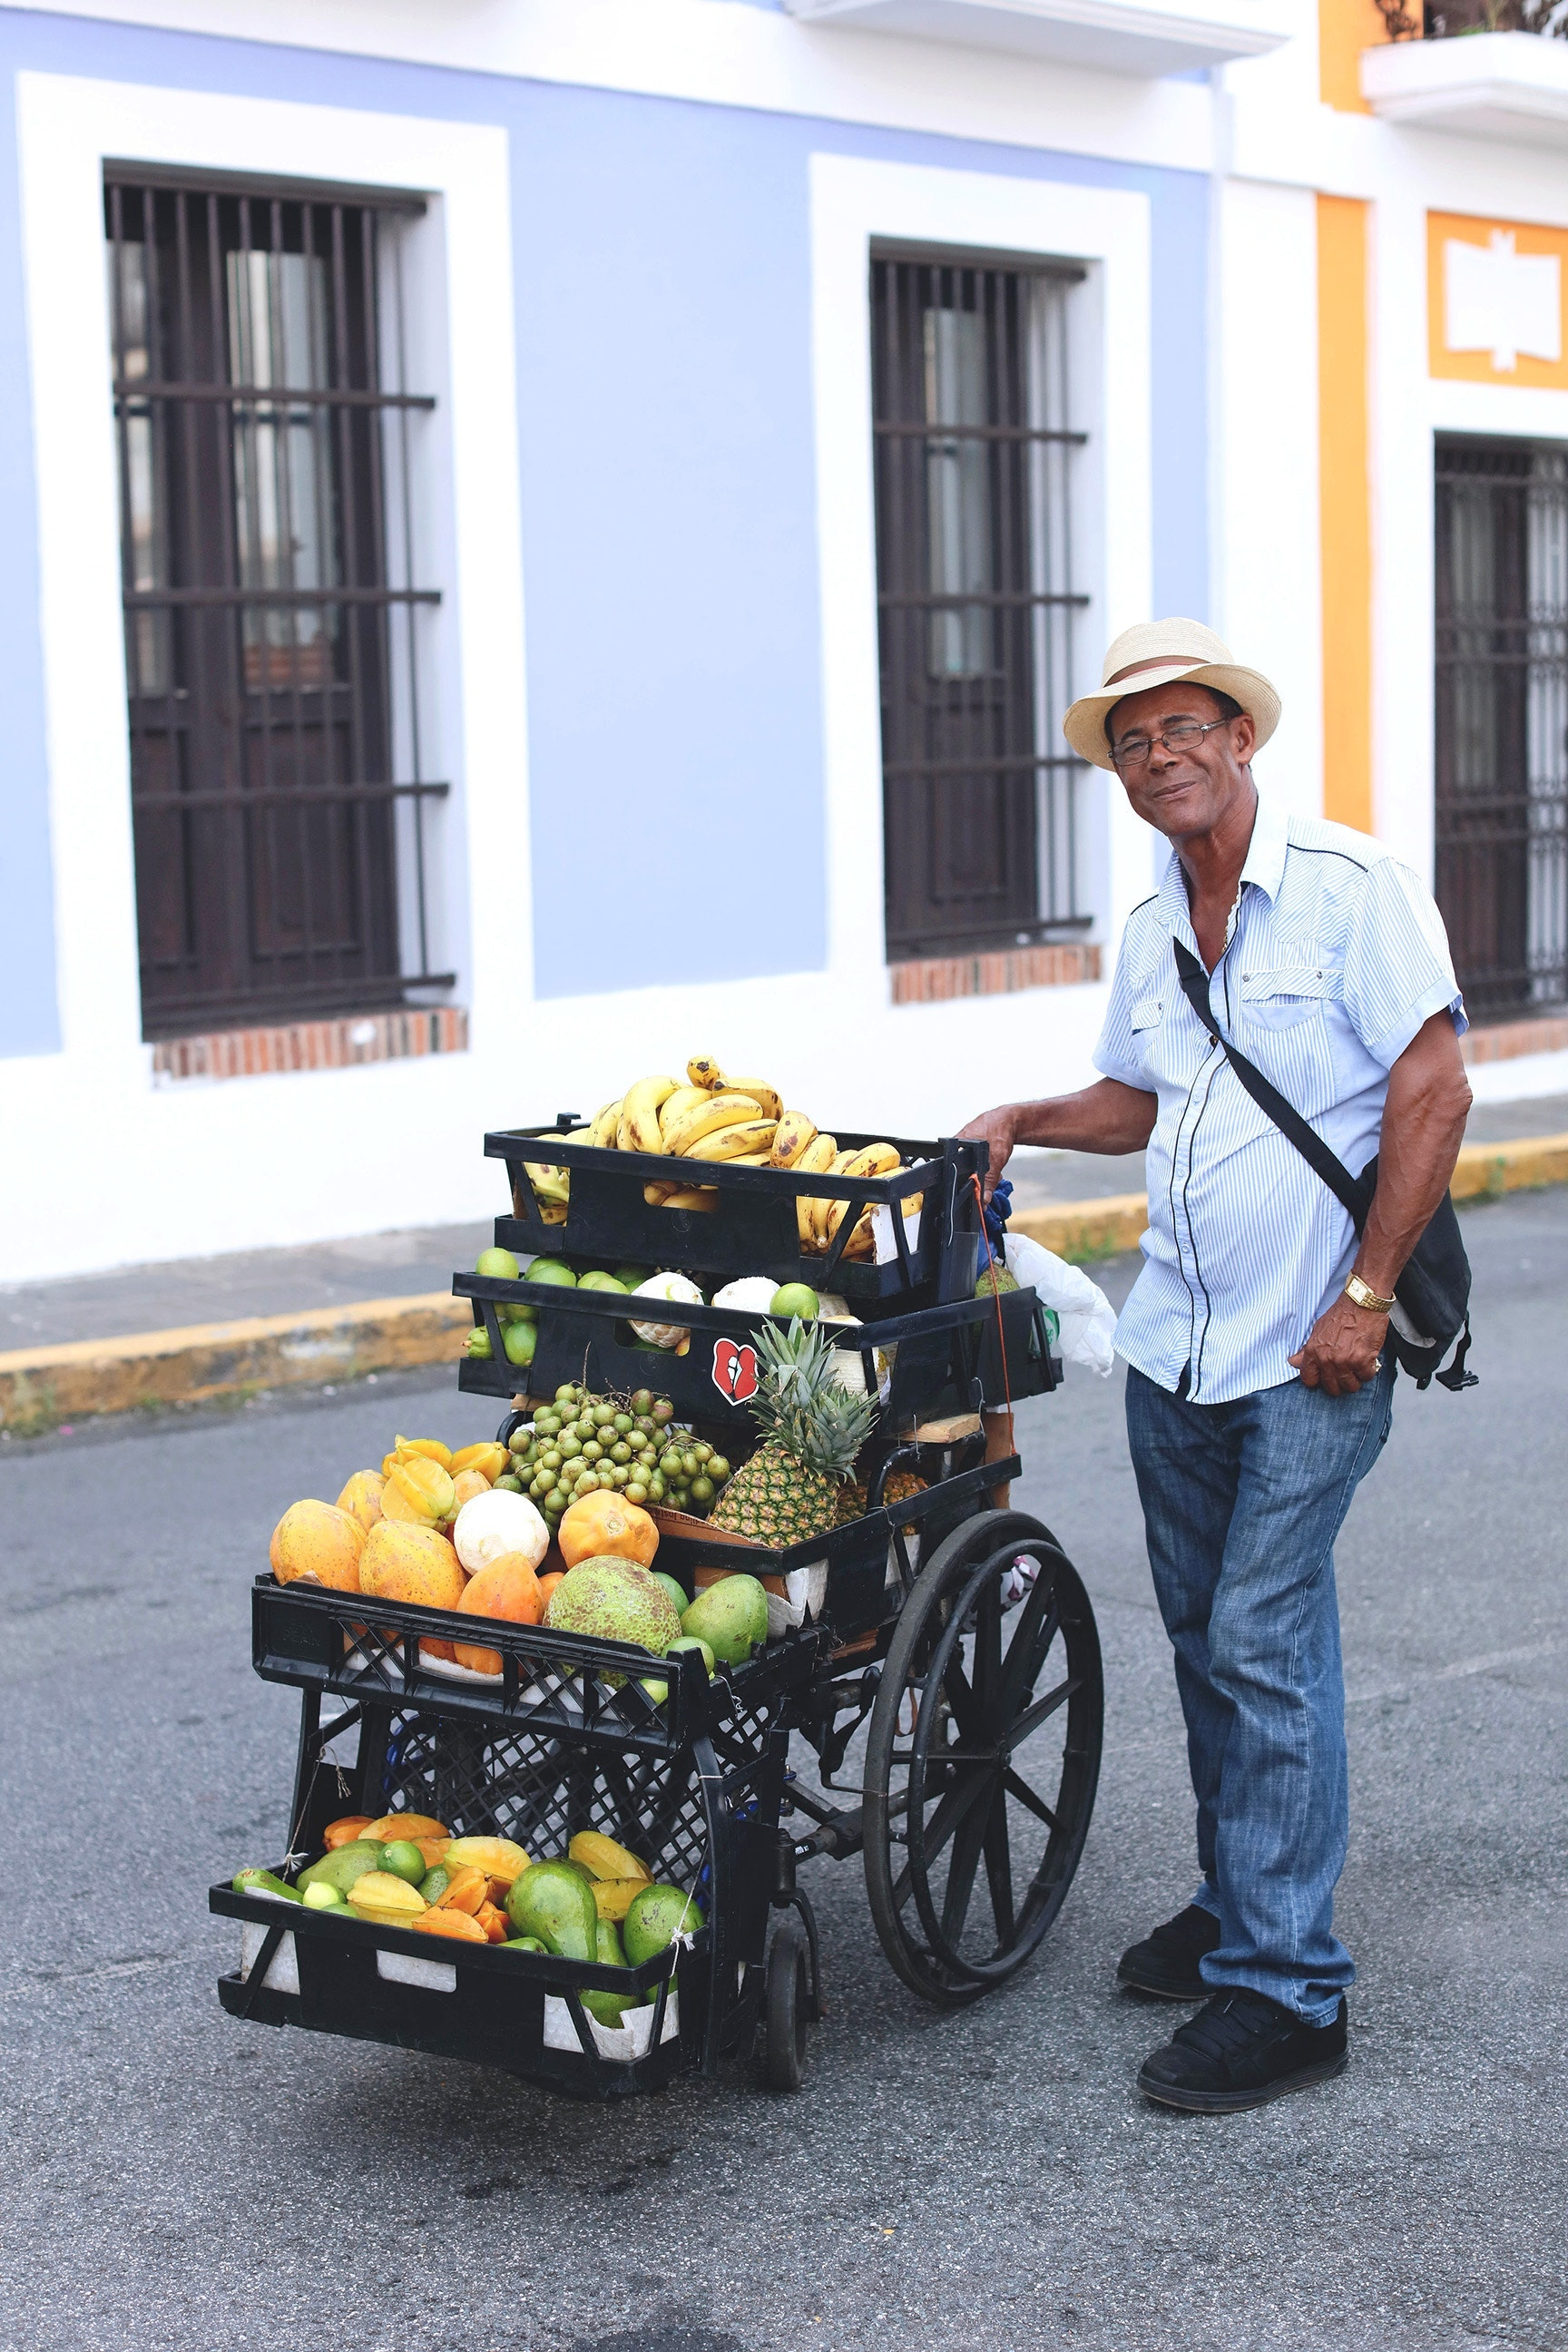 A fruit vendor in San Juan